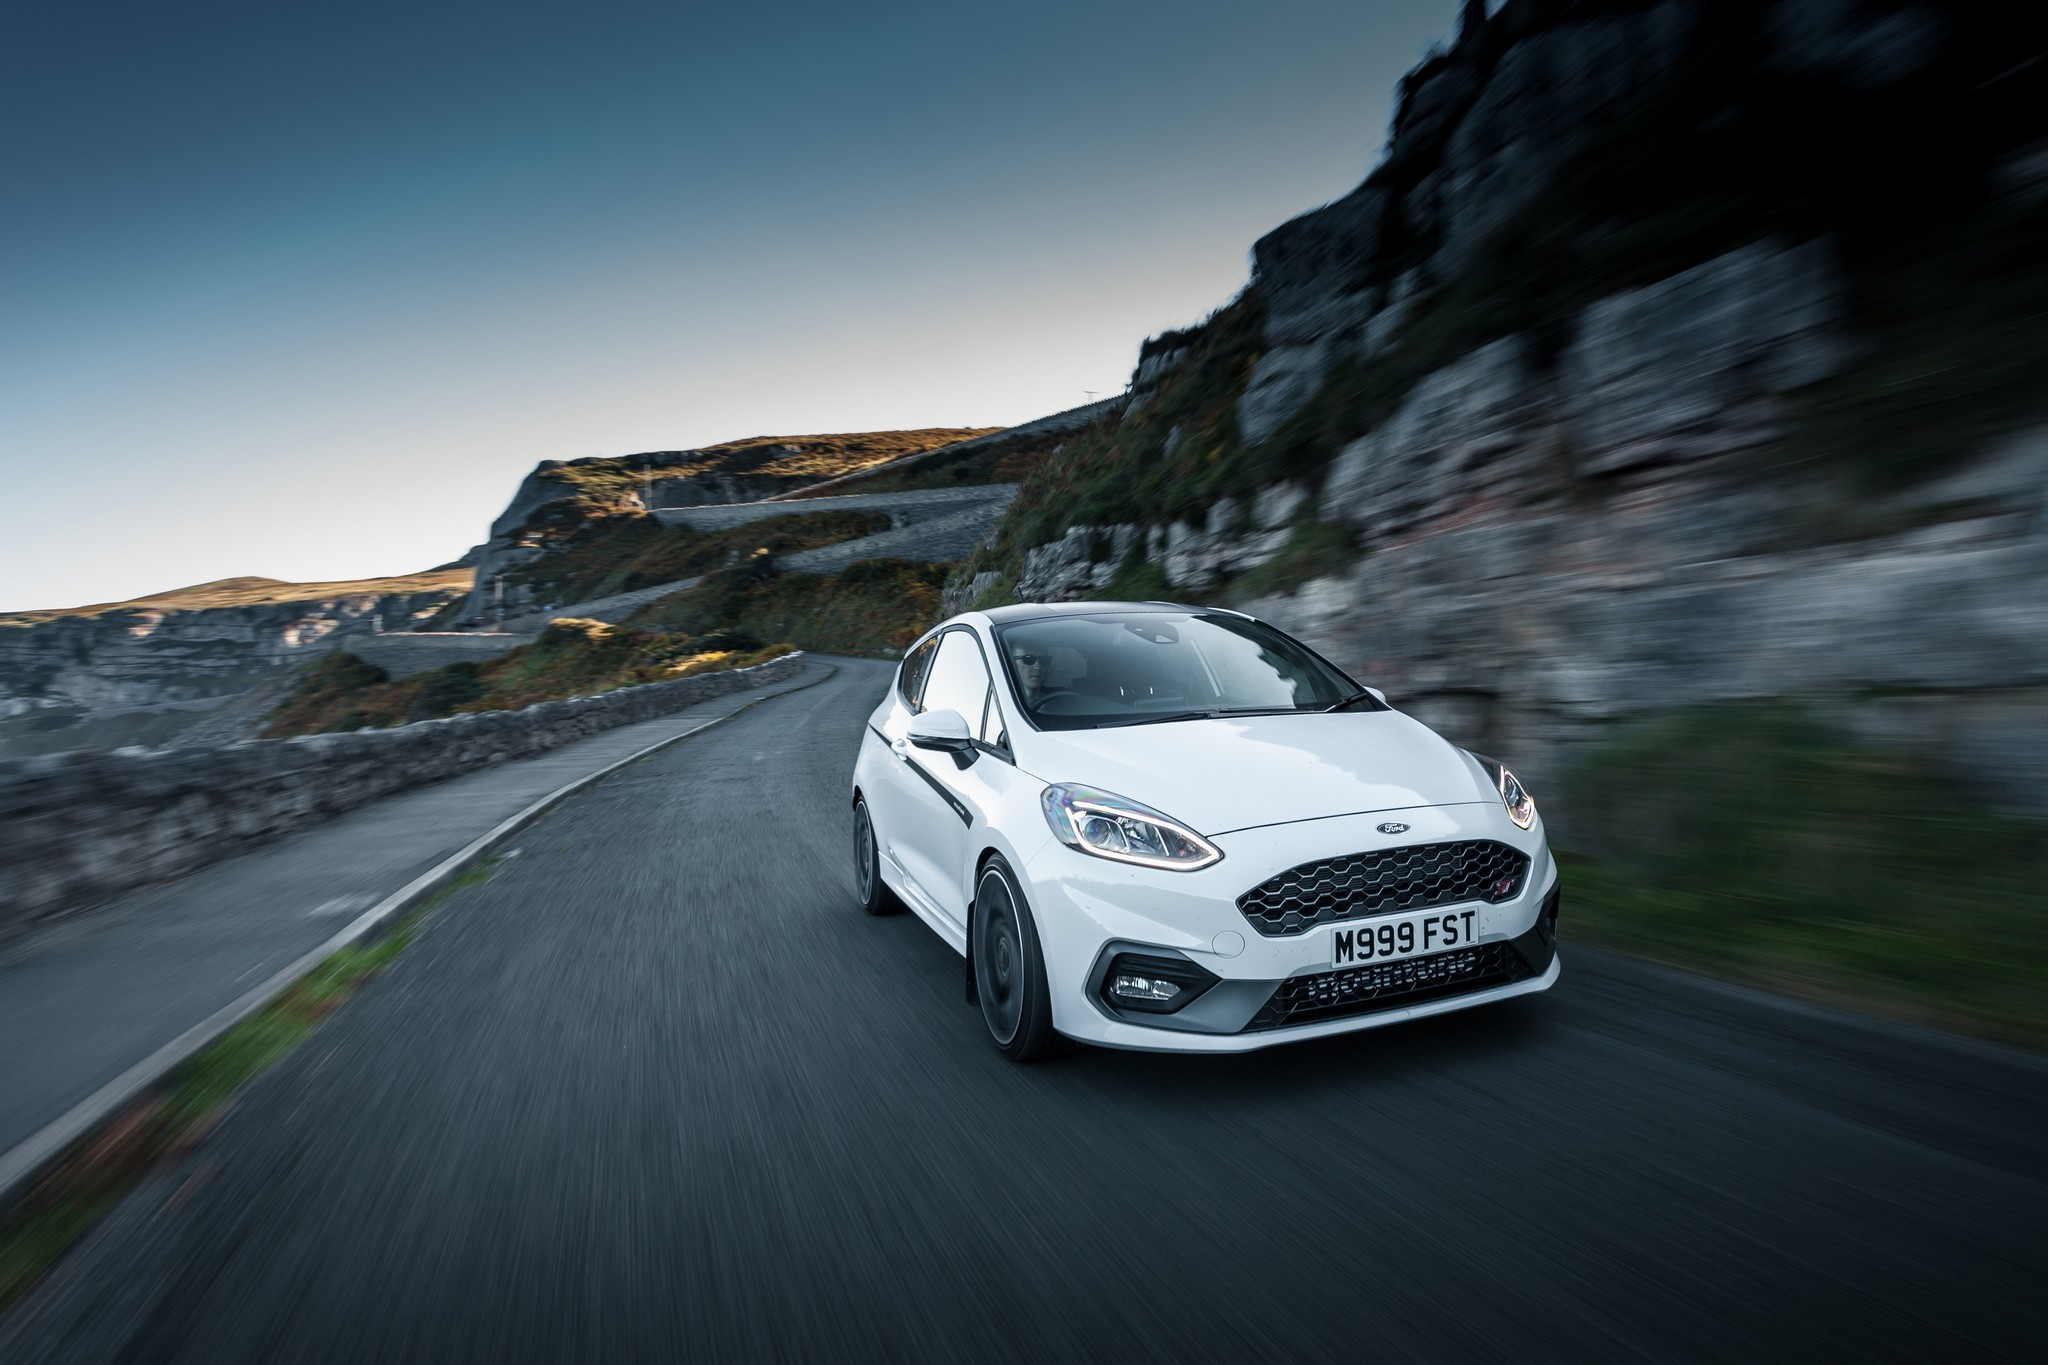 New Fiesta ST not quick enough? Mountune have the answer . . .